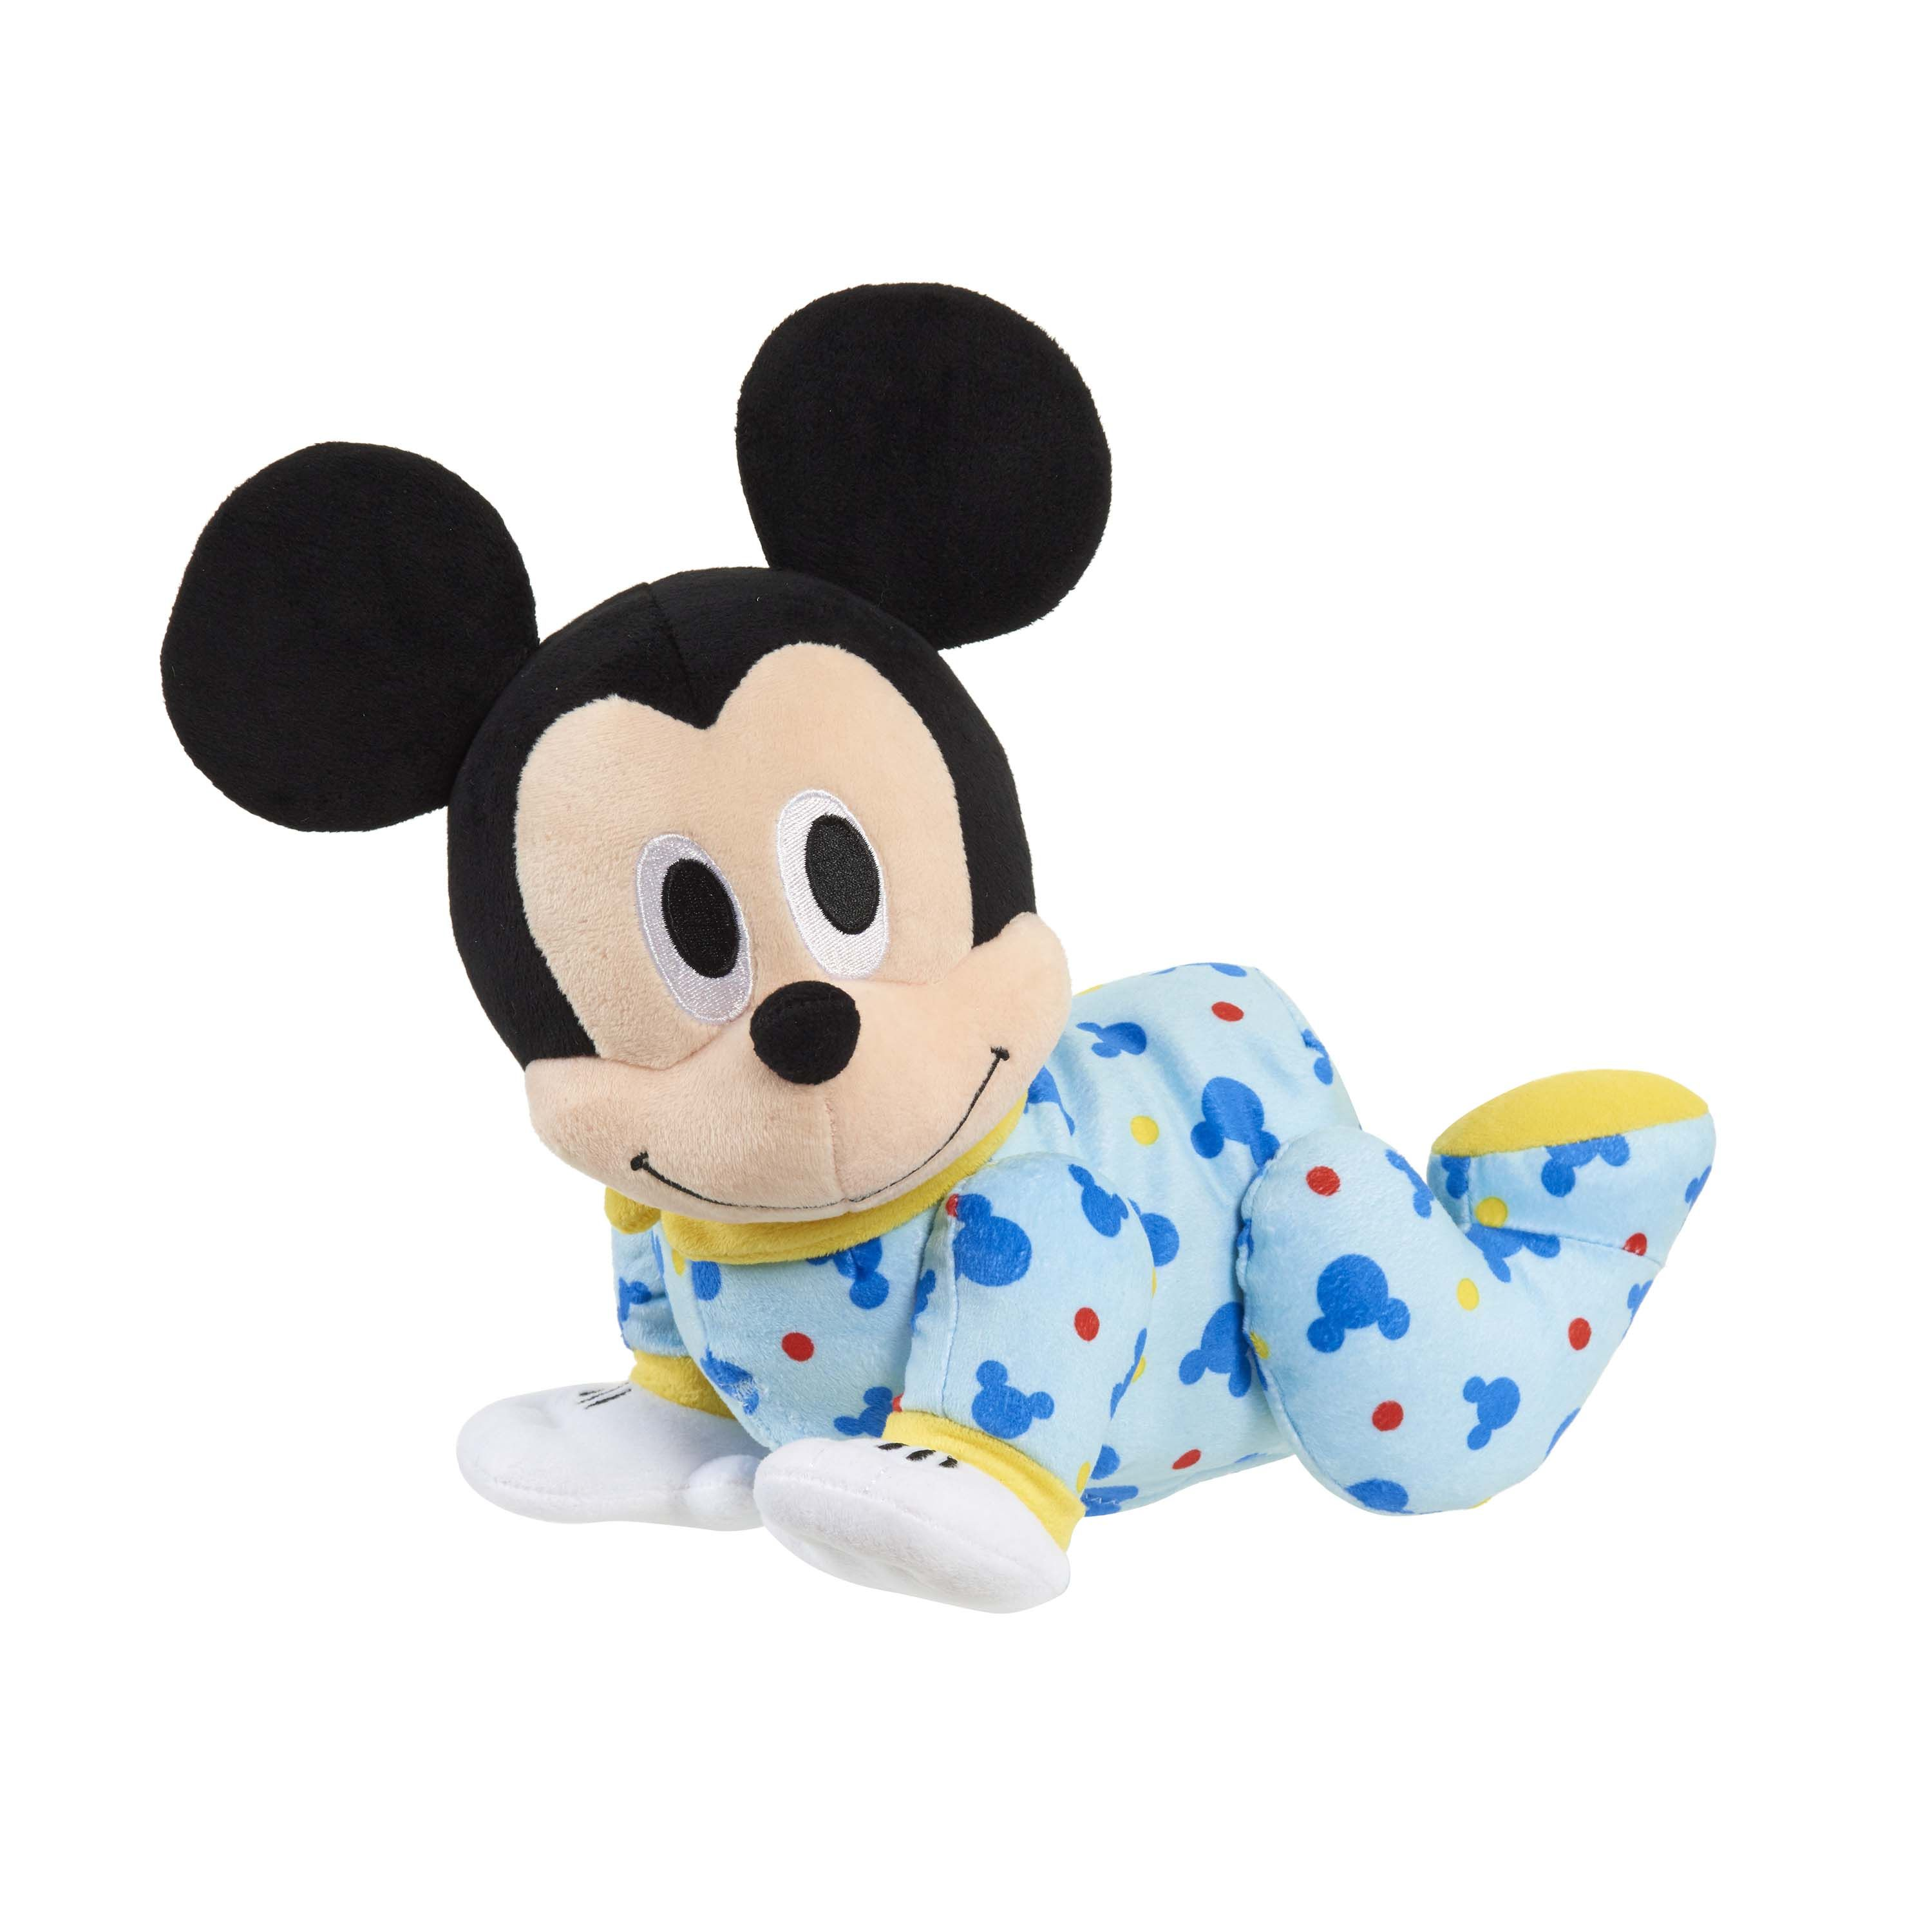 Predownload: Disney Baby Musical Crawling Pals Plush Mickey Plush Animated Ages 09 Month And Up Walmart Com In 2021 Baby Disney Baby Minnie Mouse Mickey [ 3000 x 3000 Pixel ]